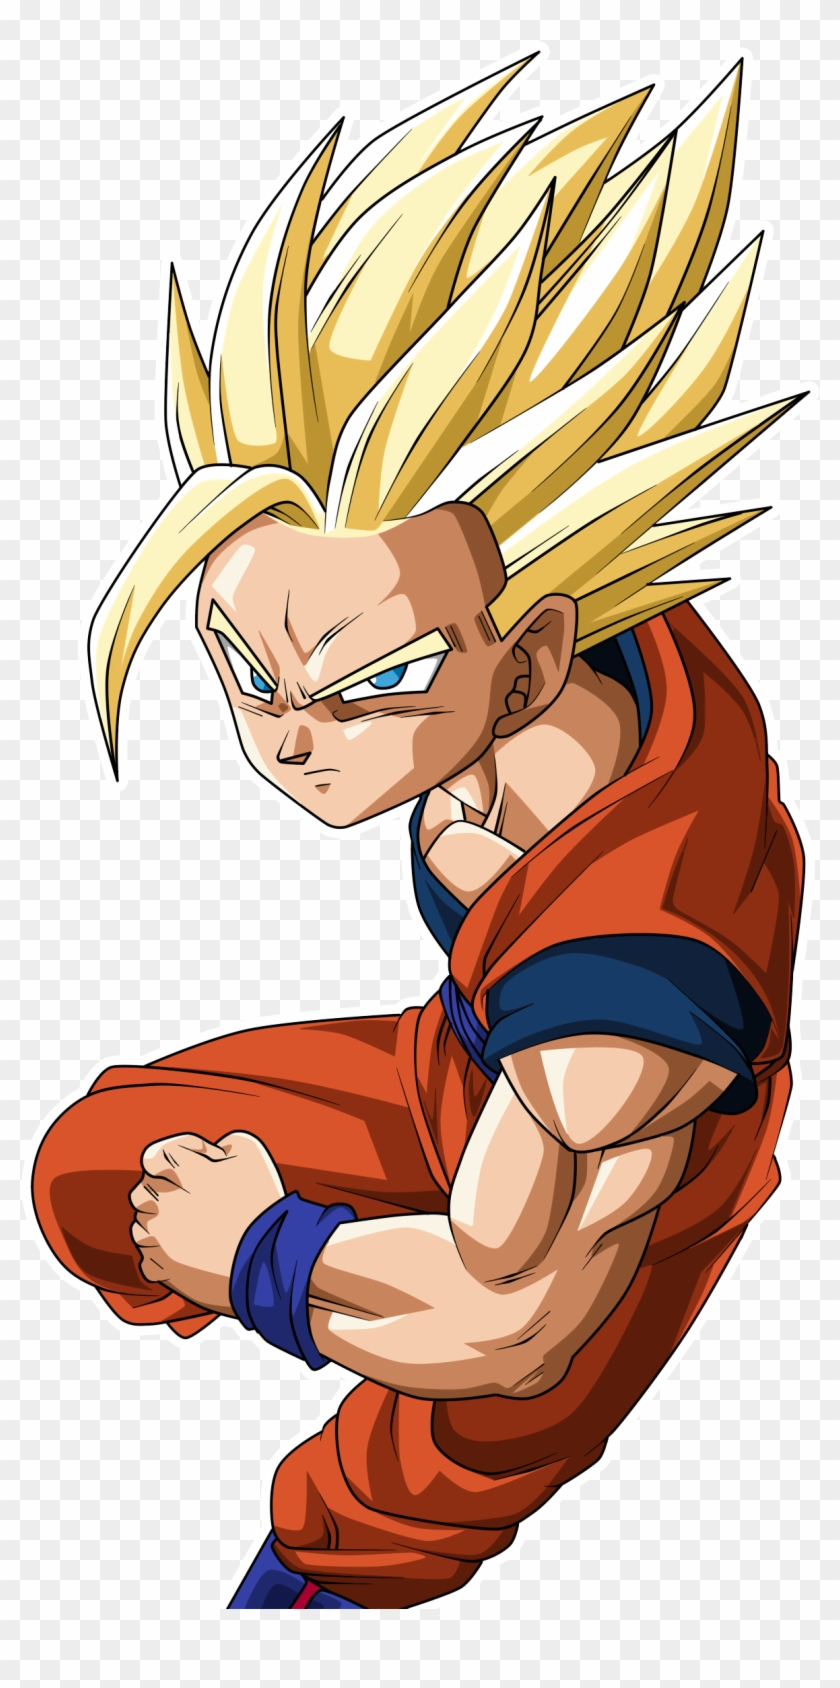 Goku Clipart Super Saiyan2 Ssj Gohan Hd Png Download